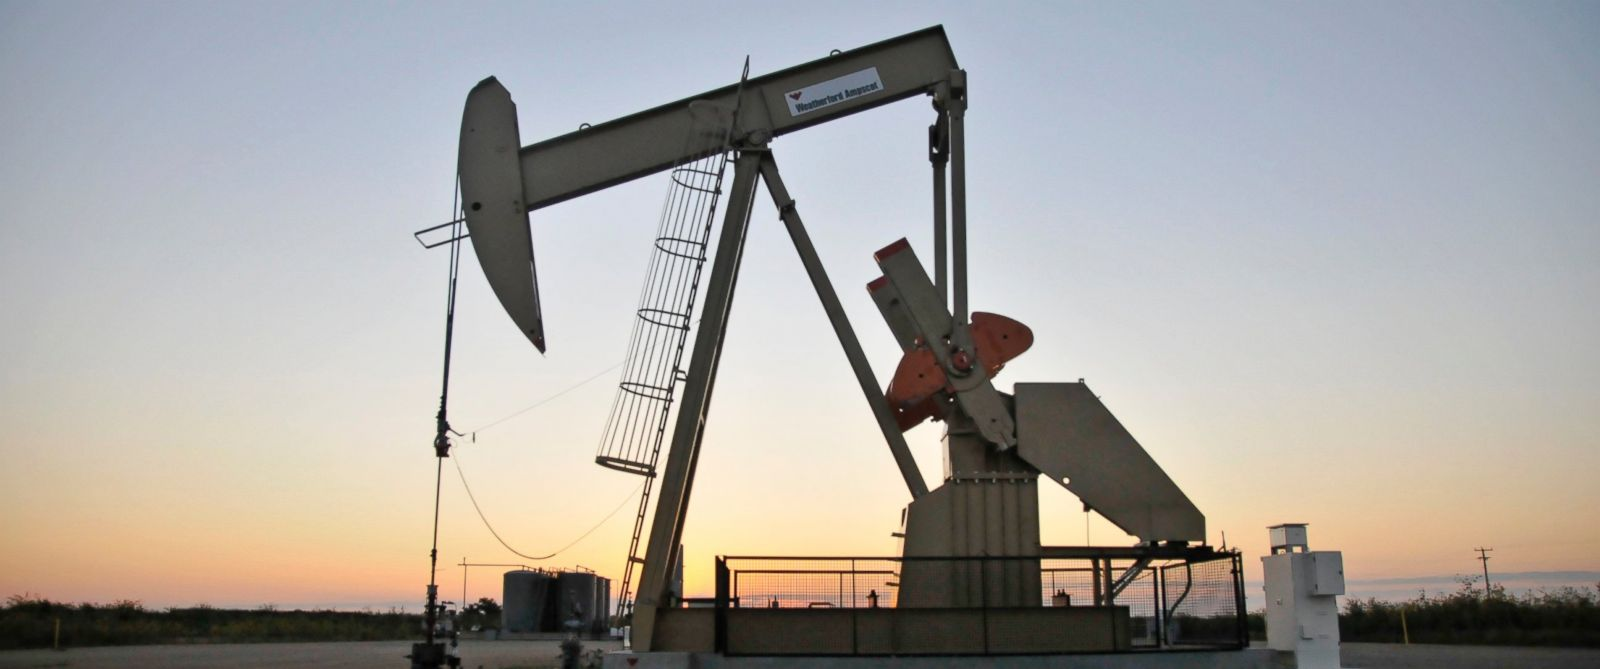 PHOTO: A pump jack operates at a well site leased by Devon Energy Production Company near Guthrie, Okla., Sept. 15, 2015.